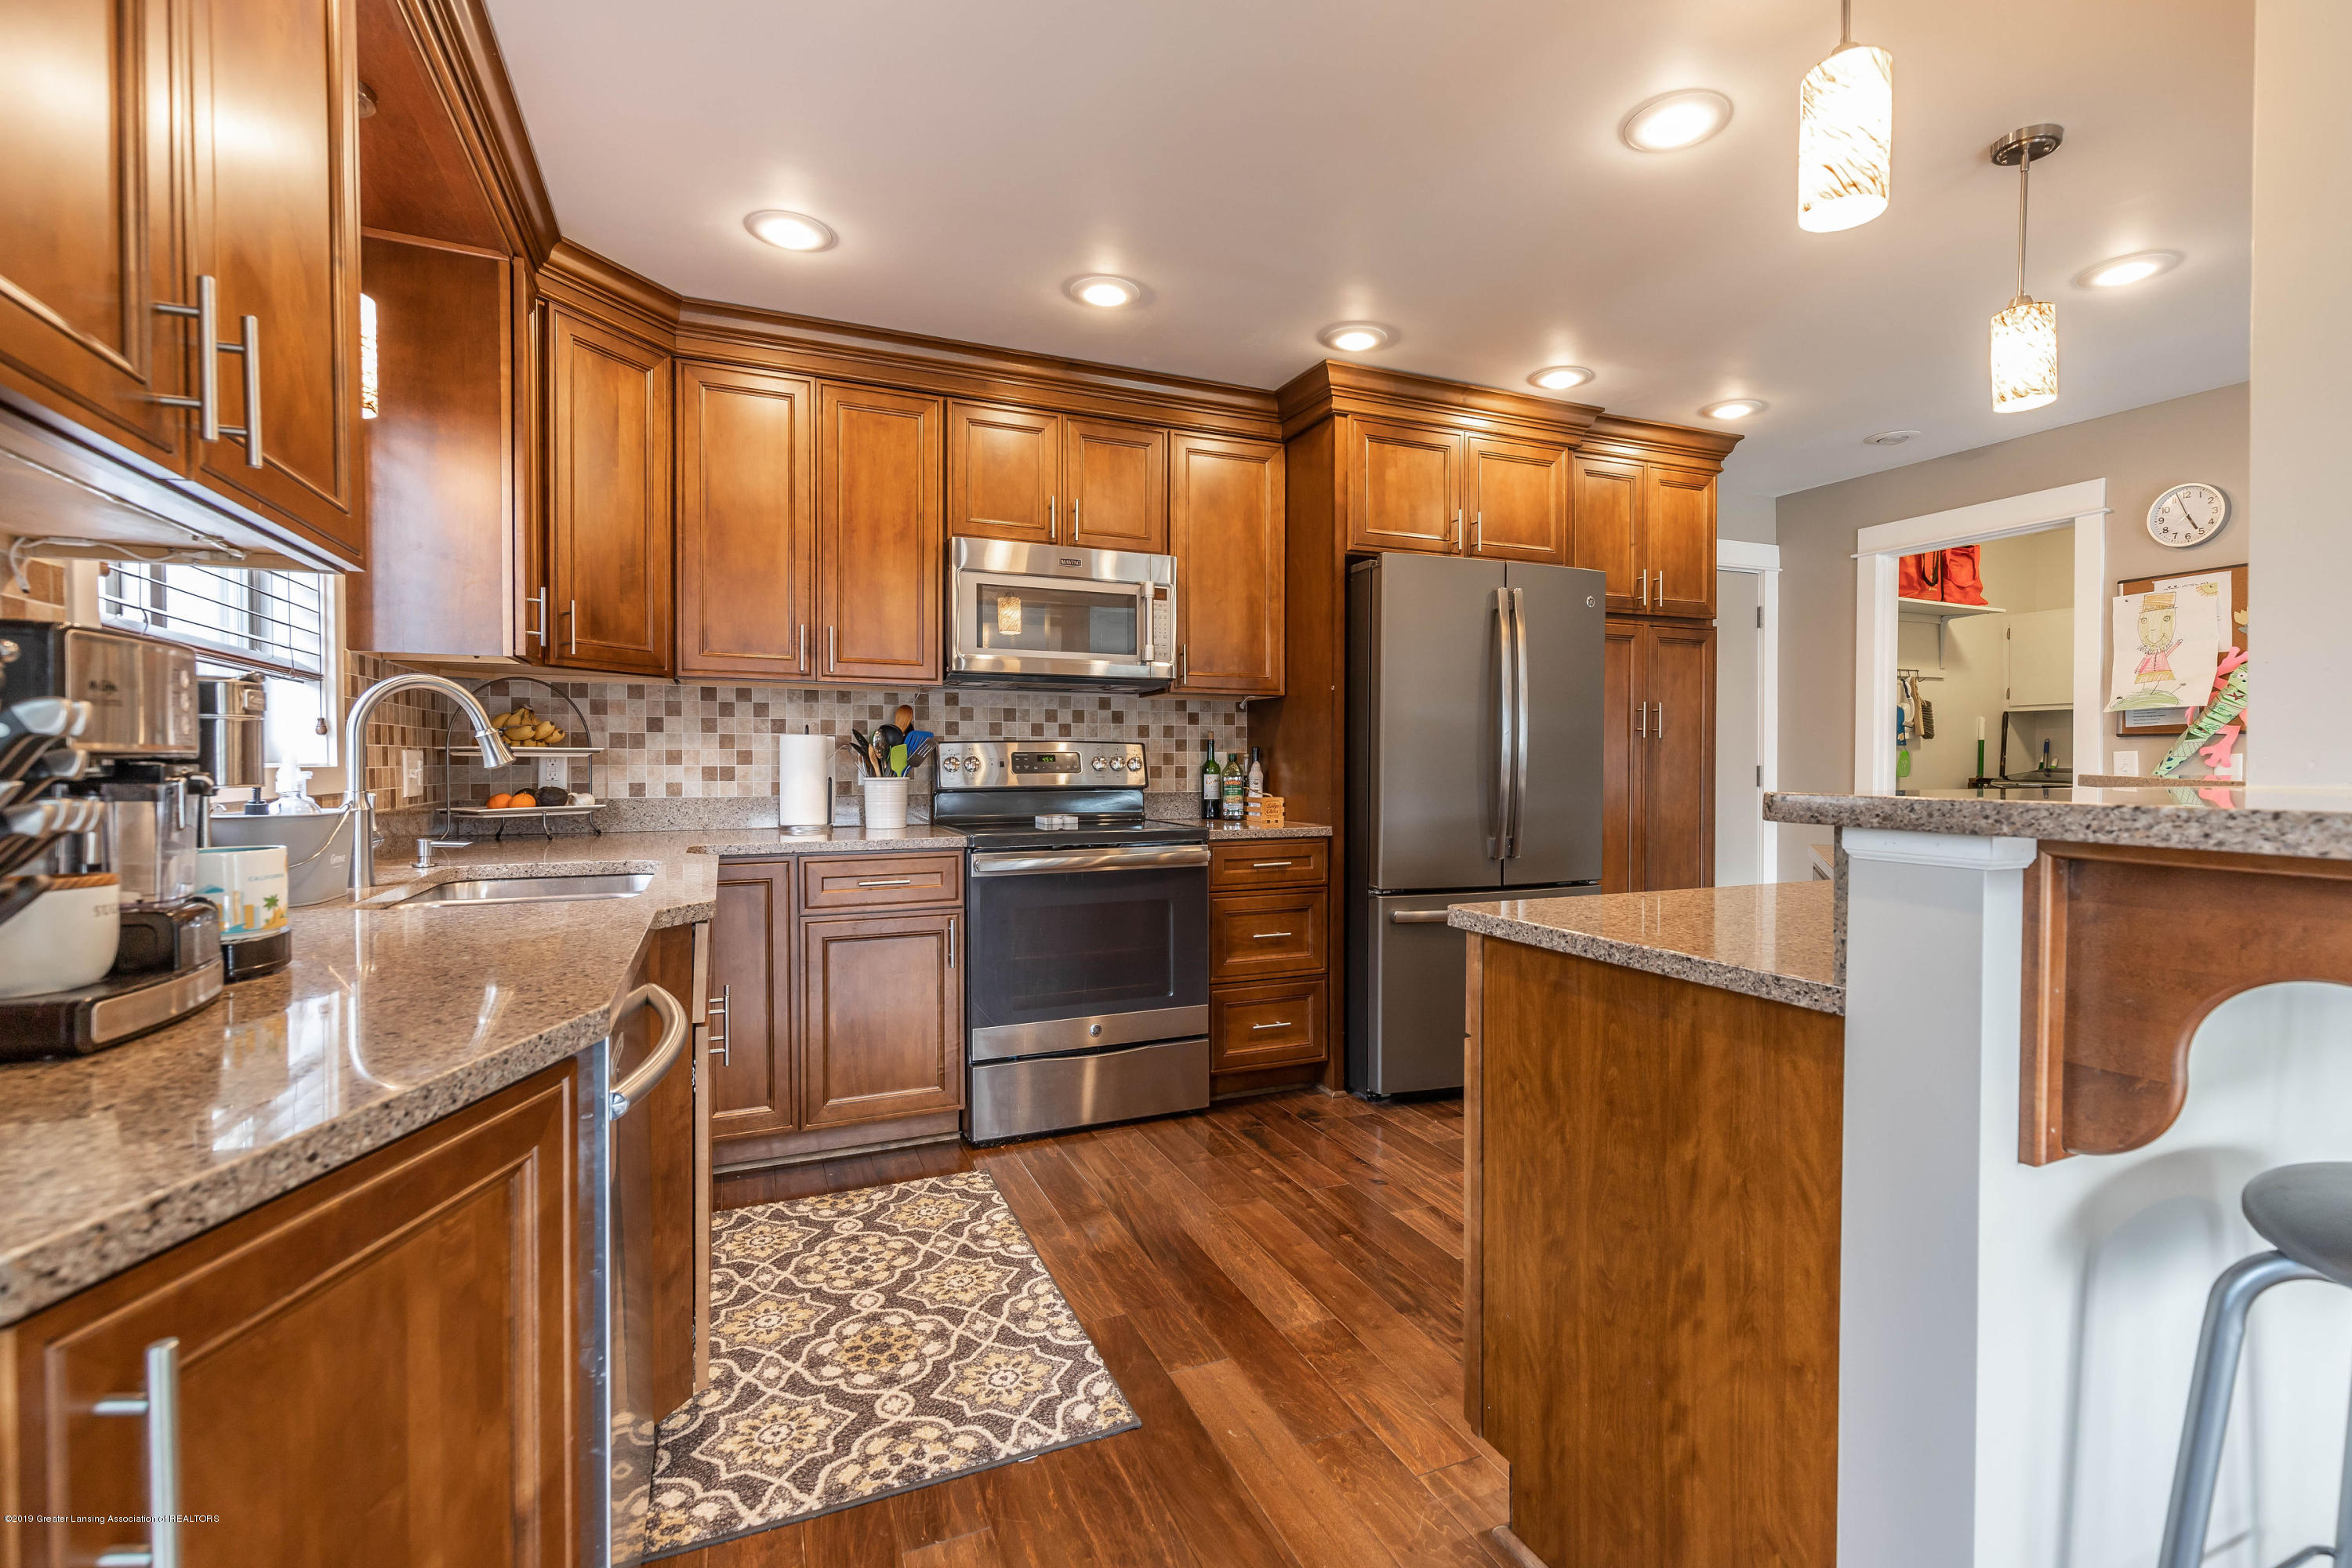 1701 Wyngarden Ln - Kitchen - 30